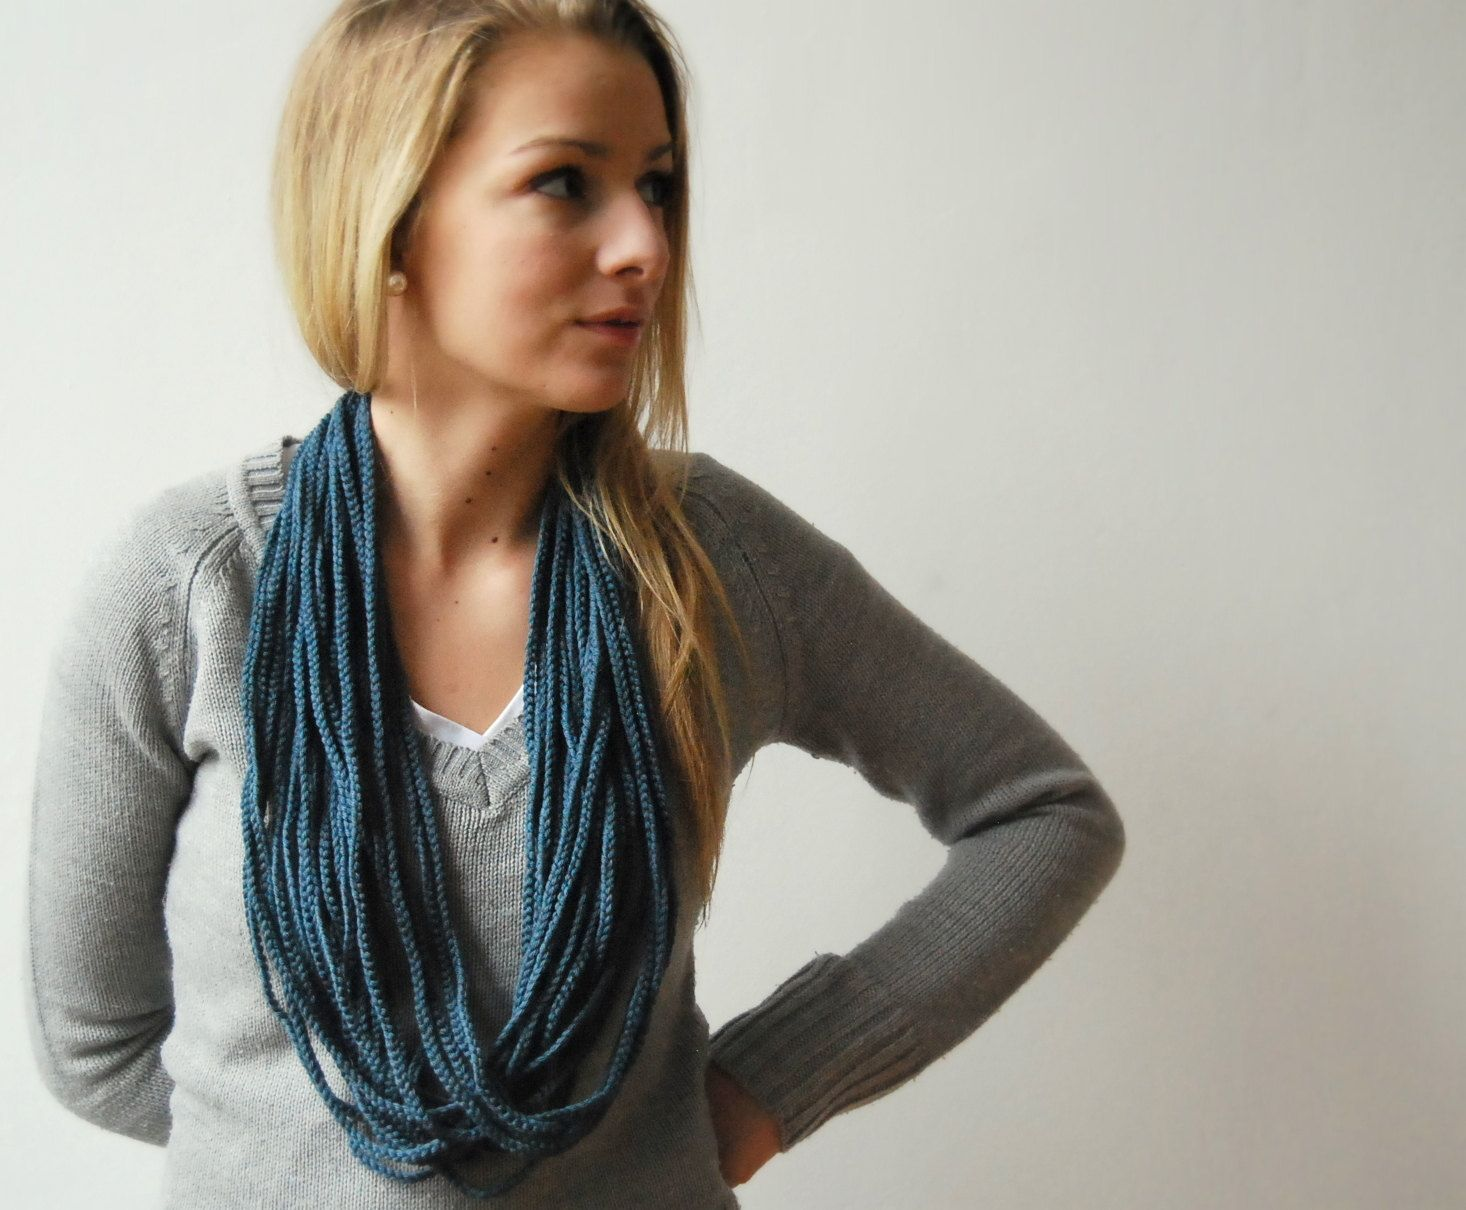 FREE SHIPPING - Crocheted Infinity Scarf in Colour of Stormy skies. $23.00, via Etsy.